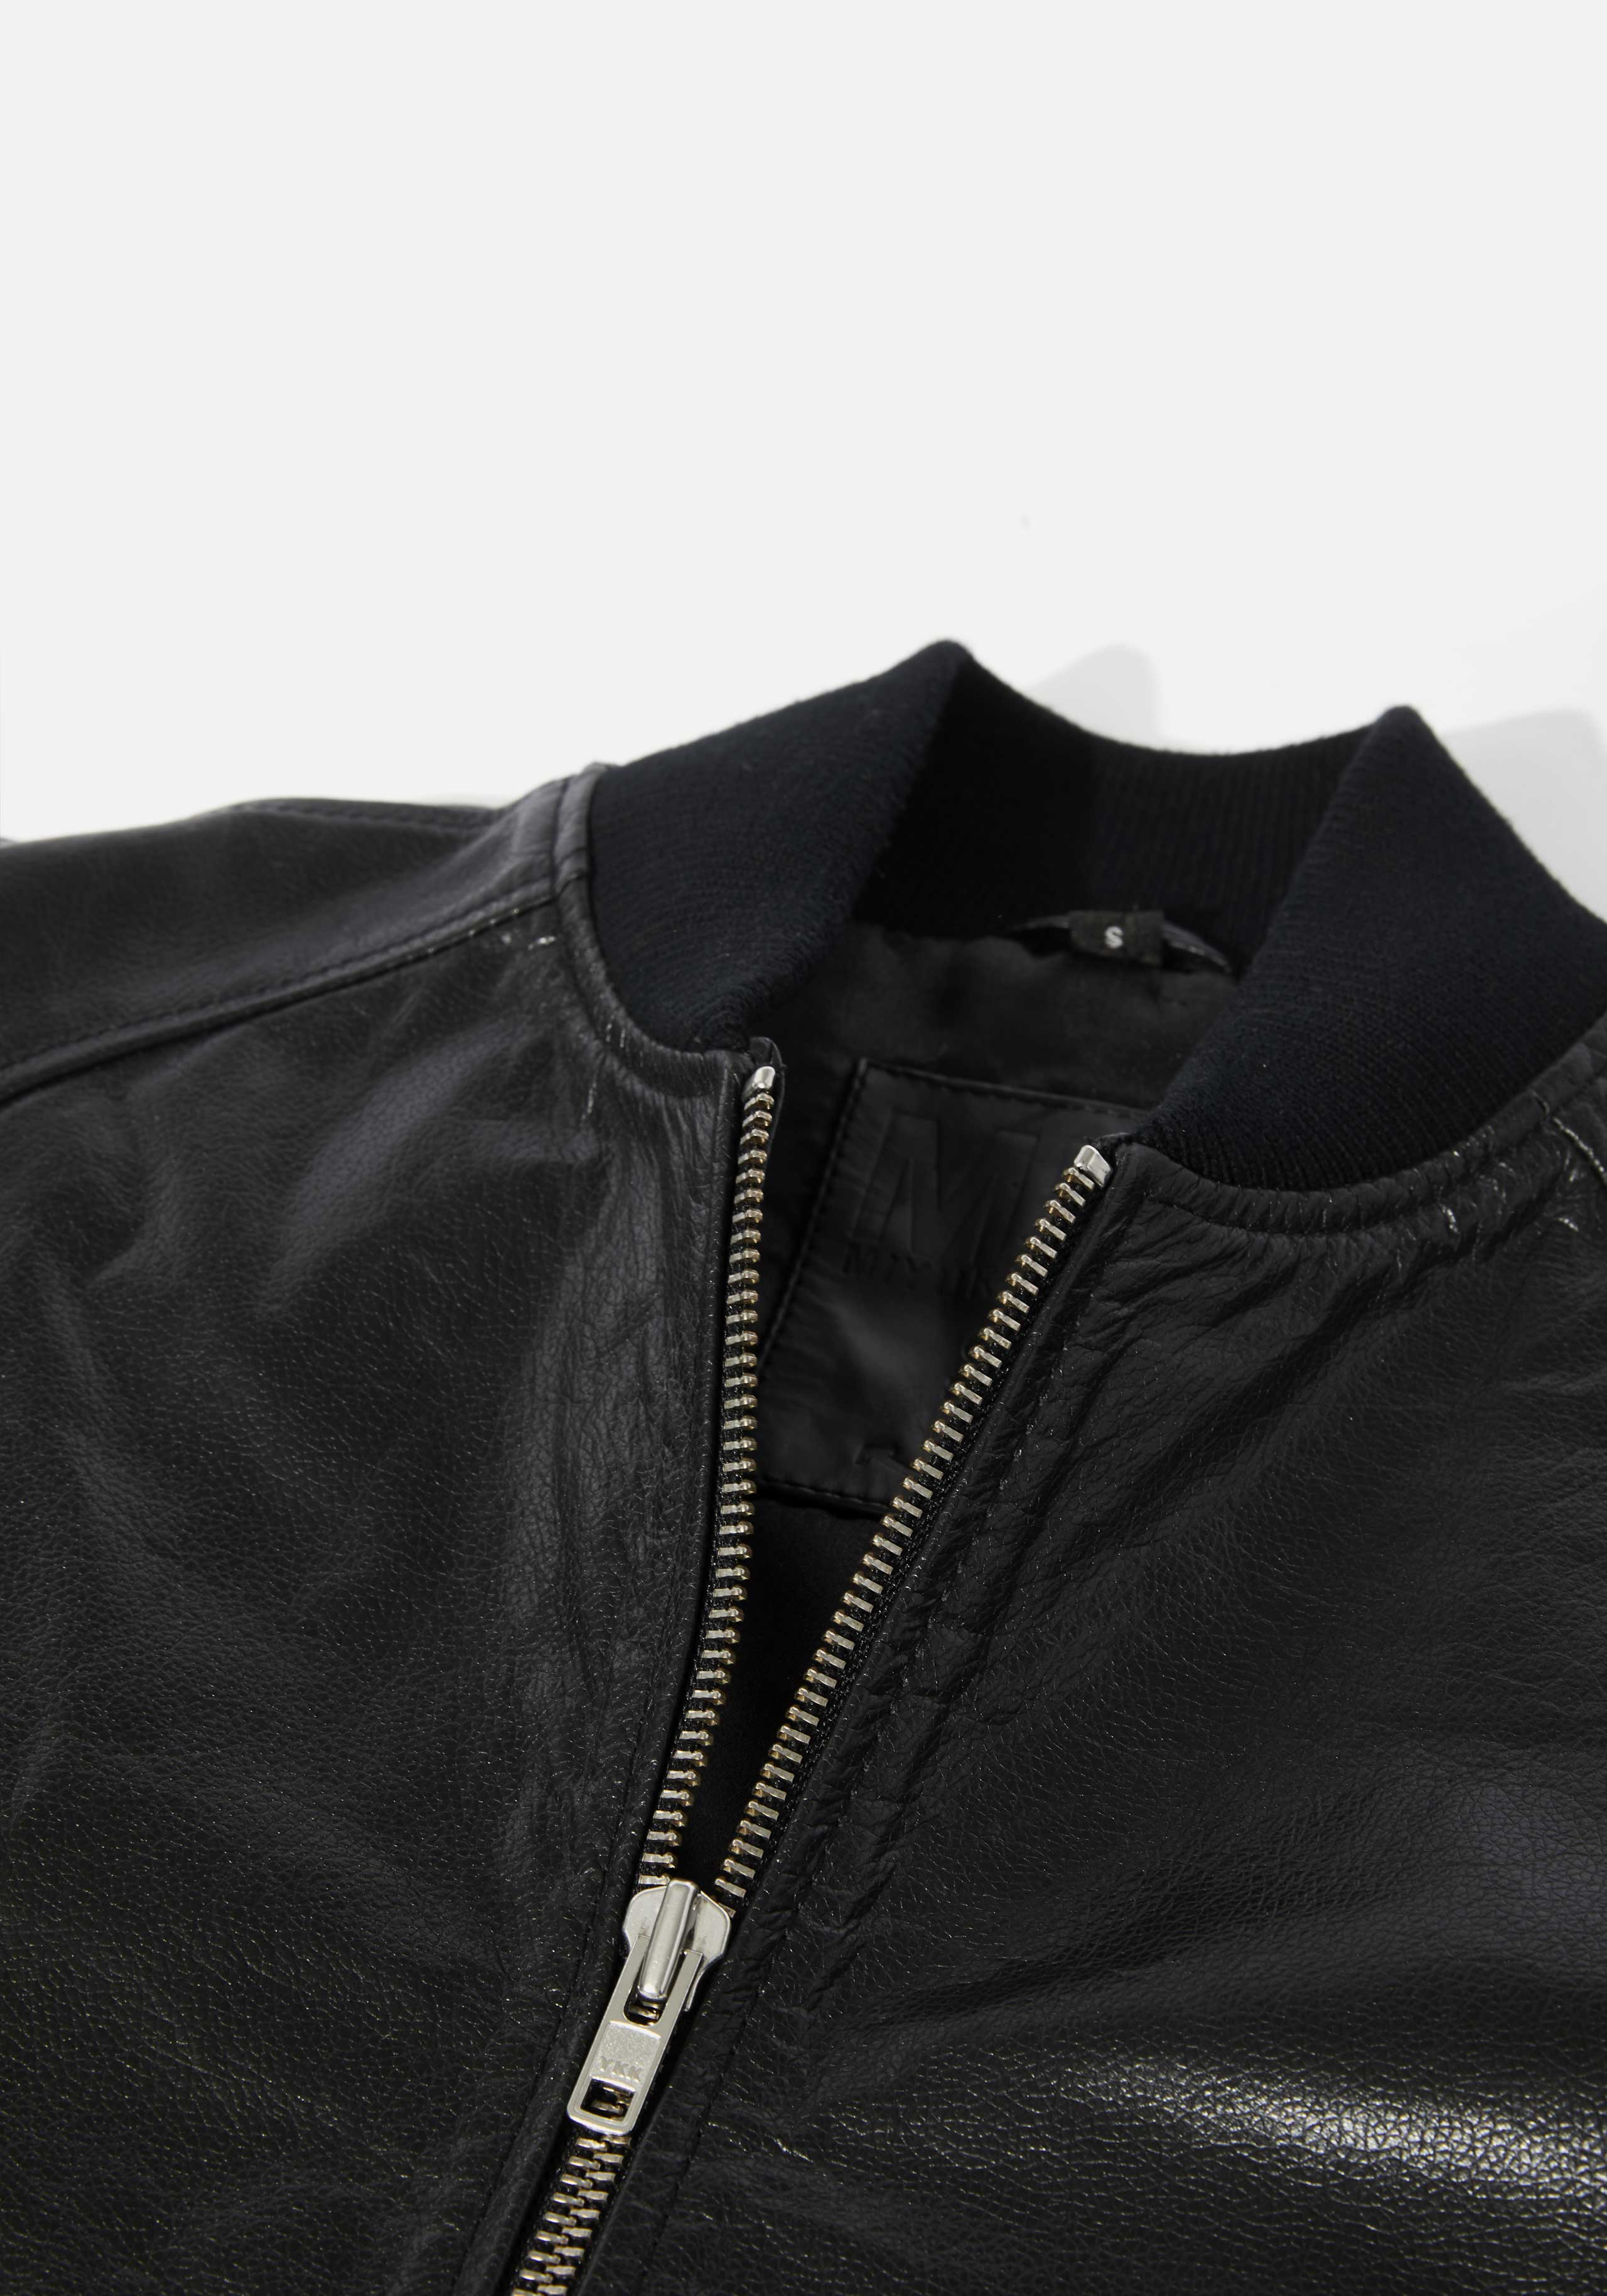 mki pdm leather bomber 3